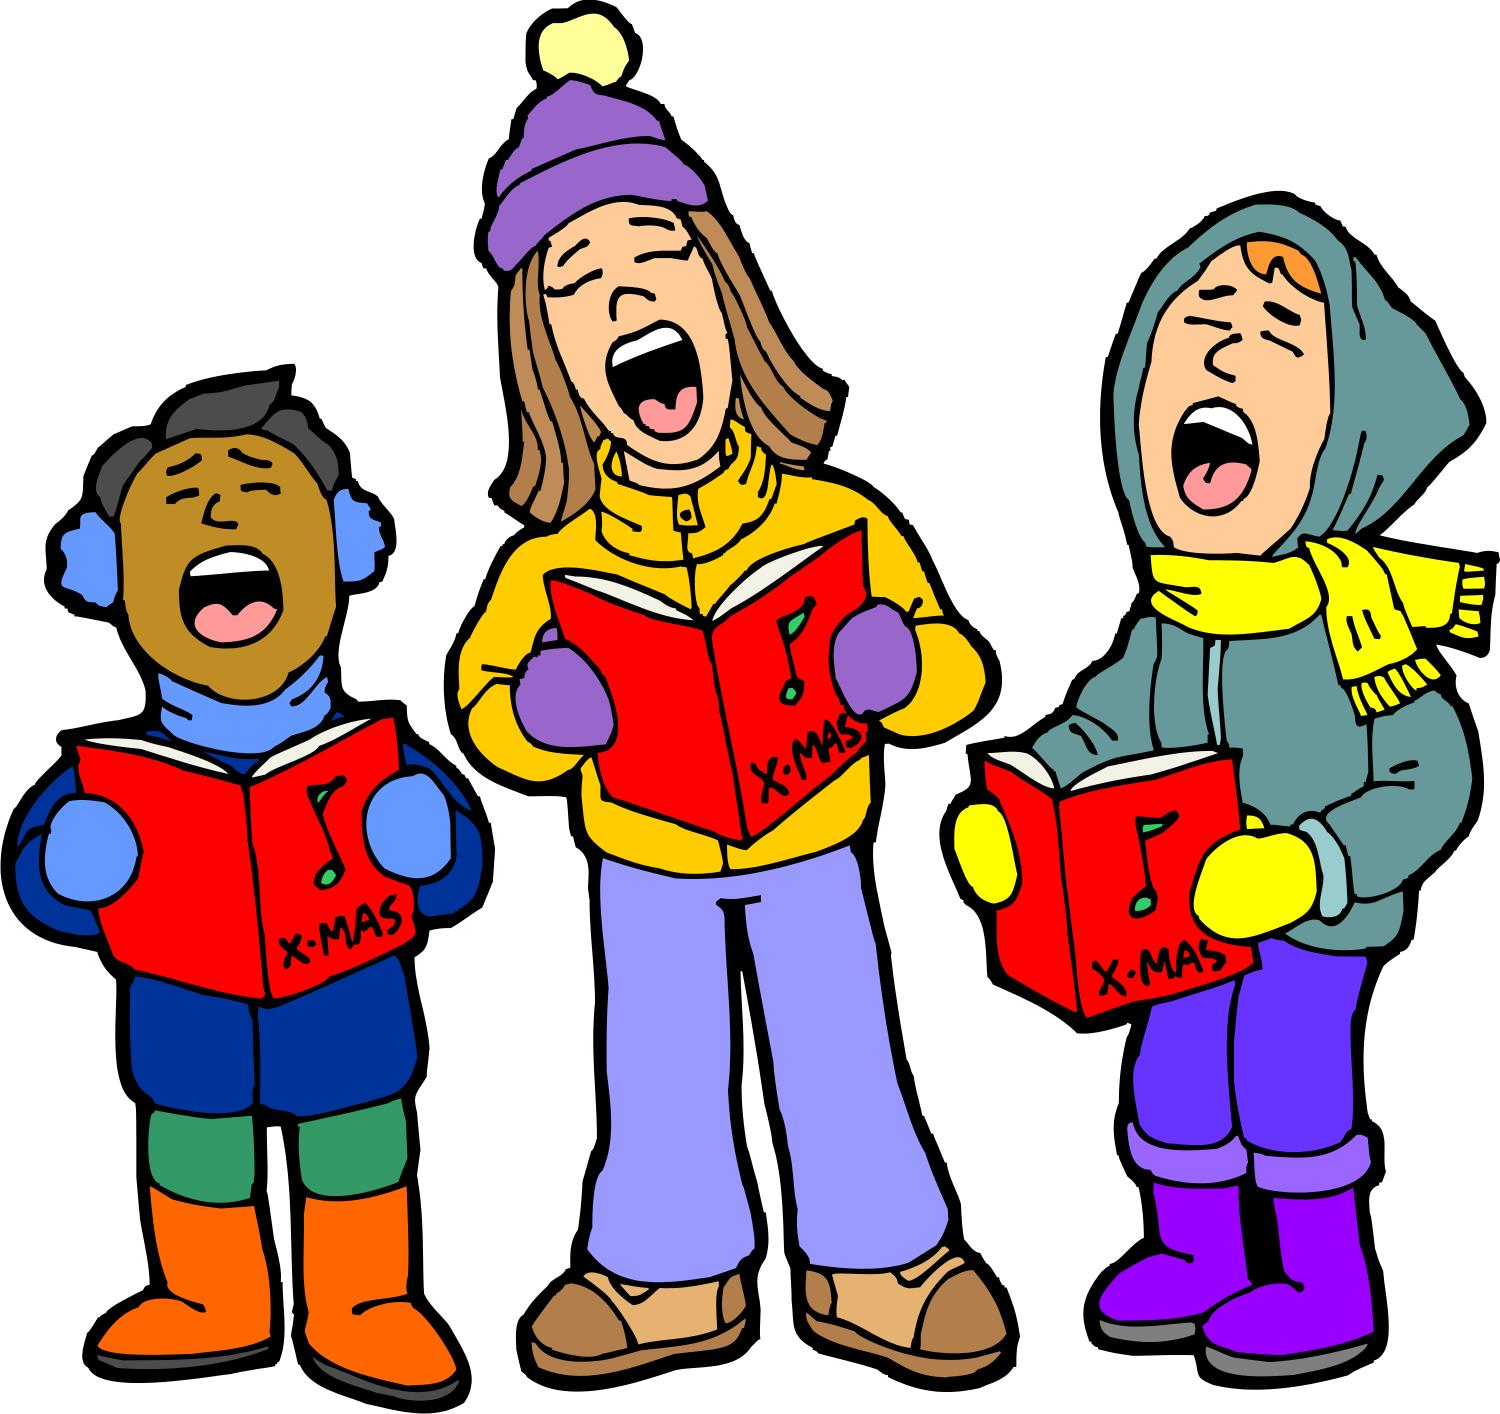 Caroling clipart person. Pictures of people singing